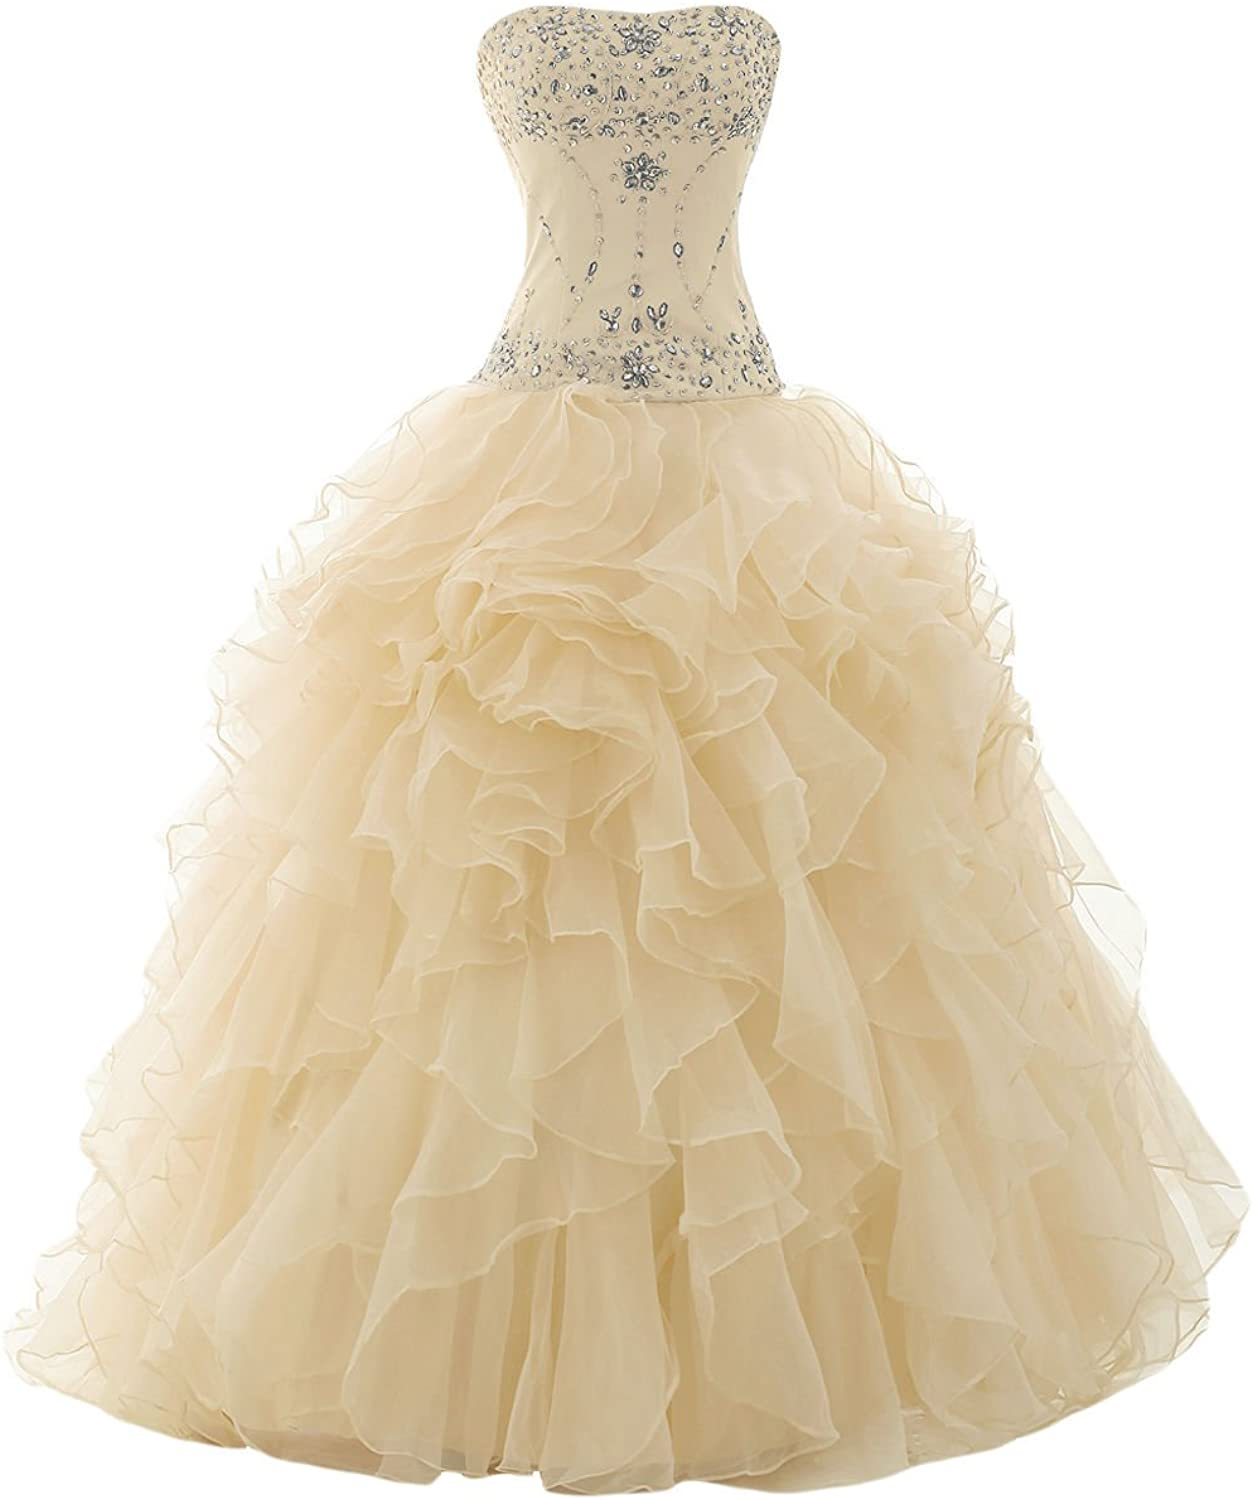 QY Bride Organza Quinceanera Dresses Long Sweet 15 Birthday Prom Gowns